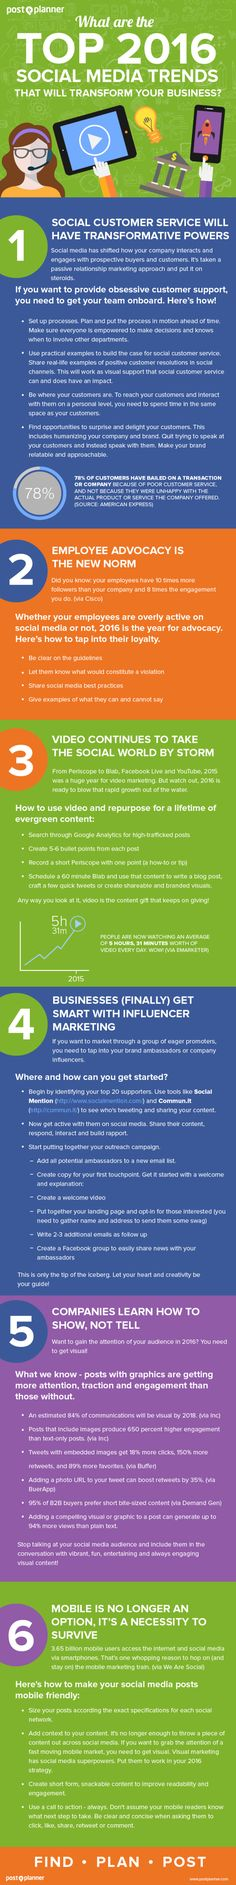 6 Social Media Trends That Could Transform Your Business In 2016 #Infographic